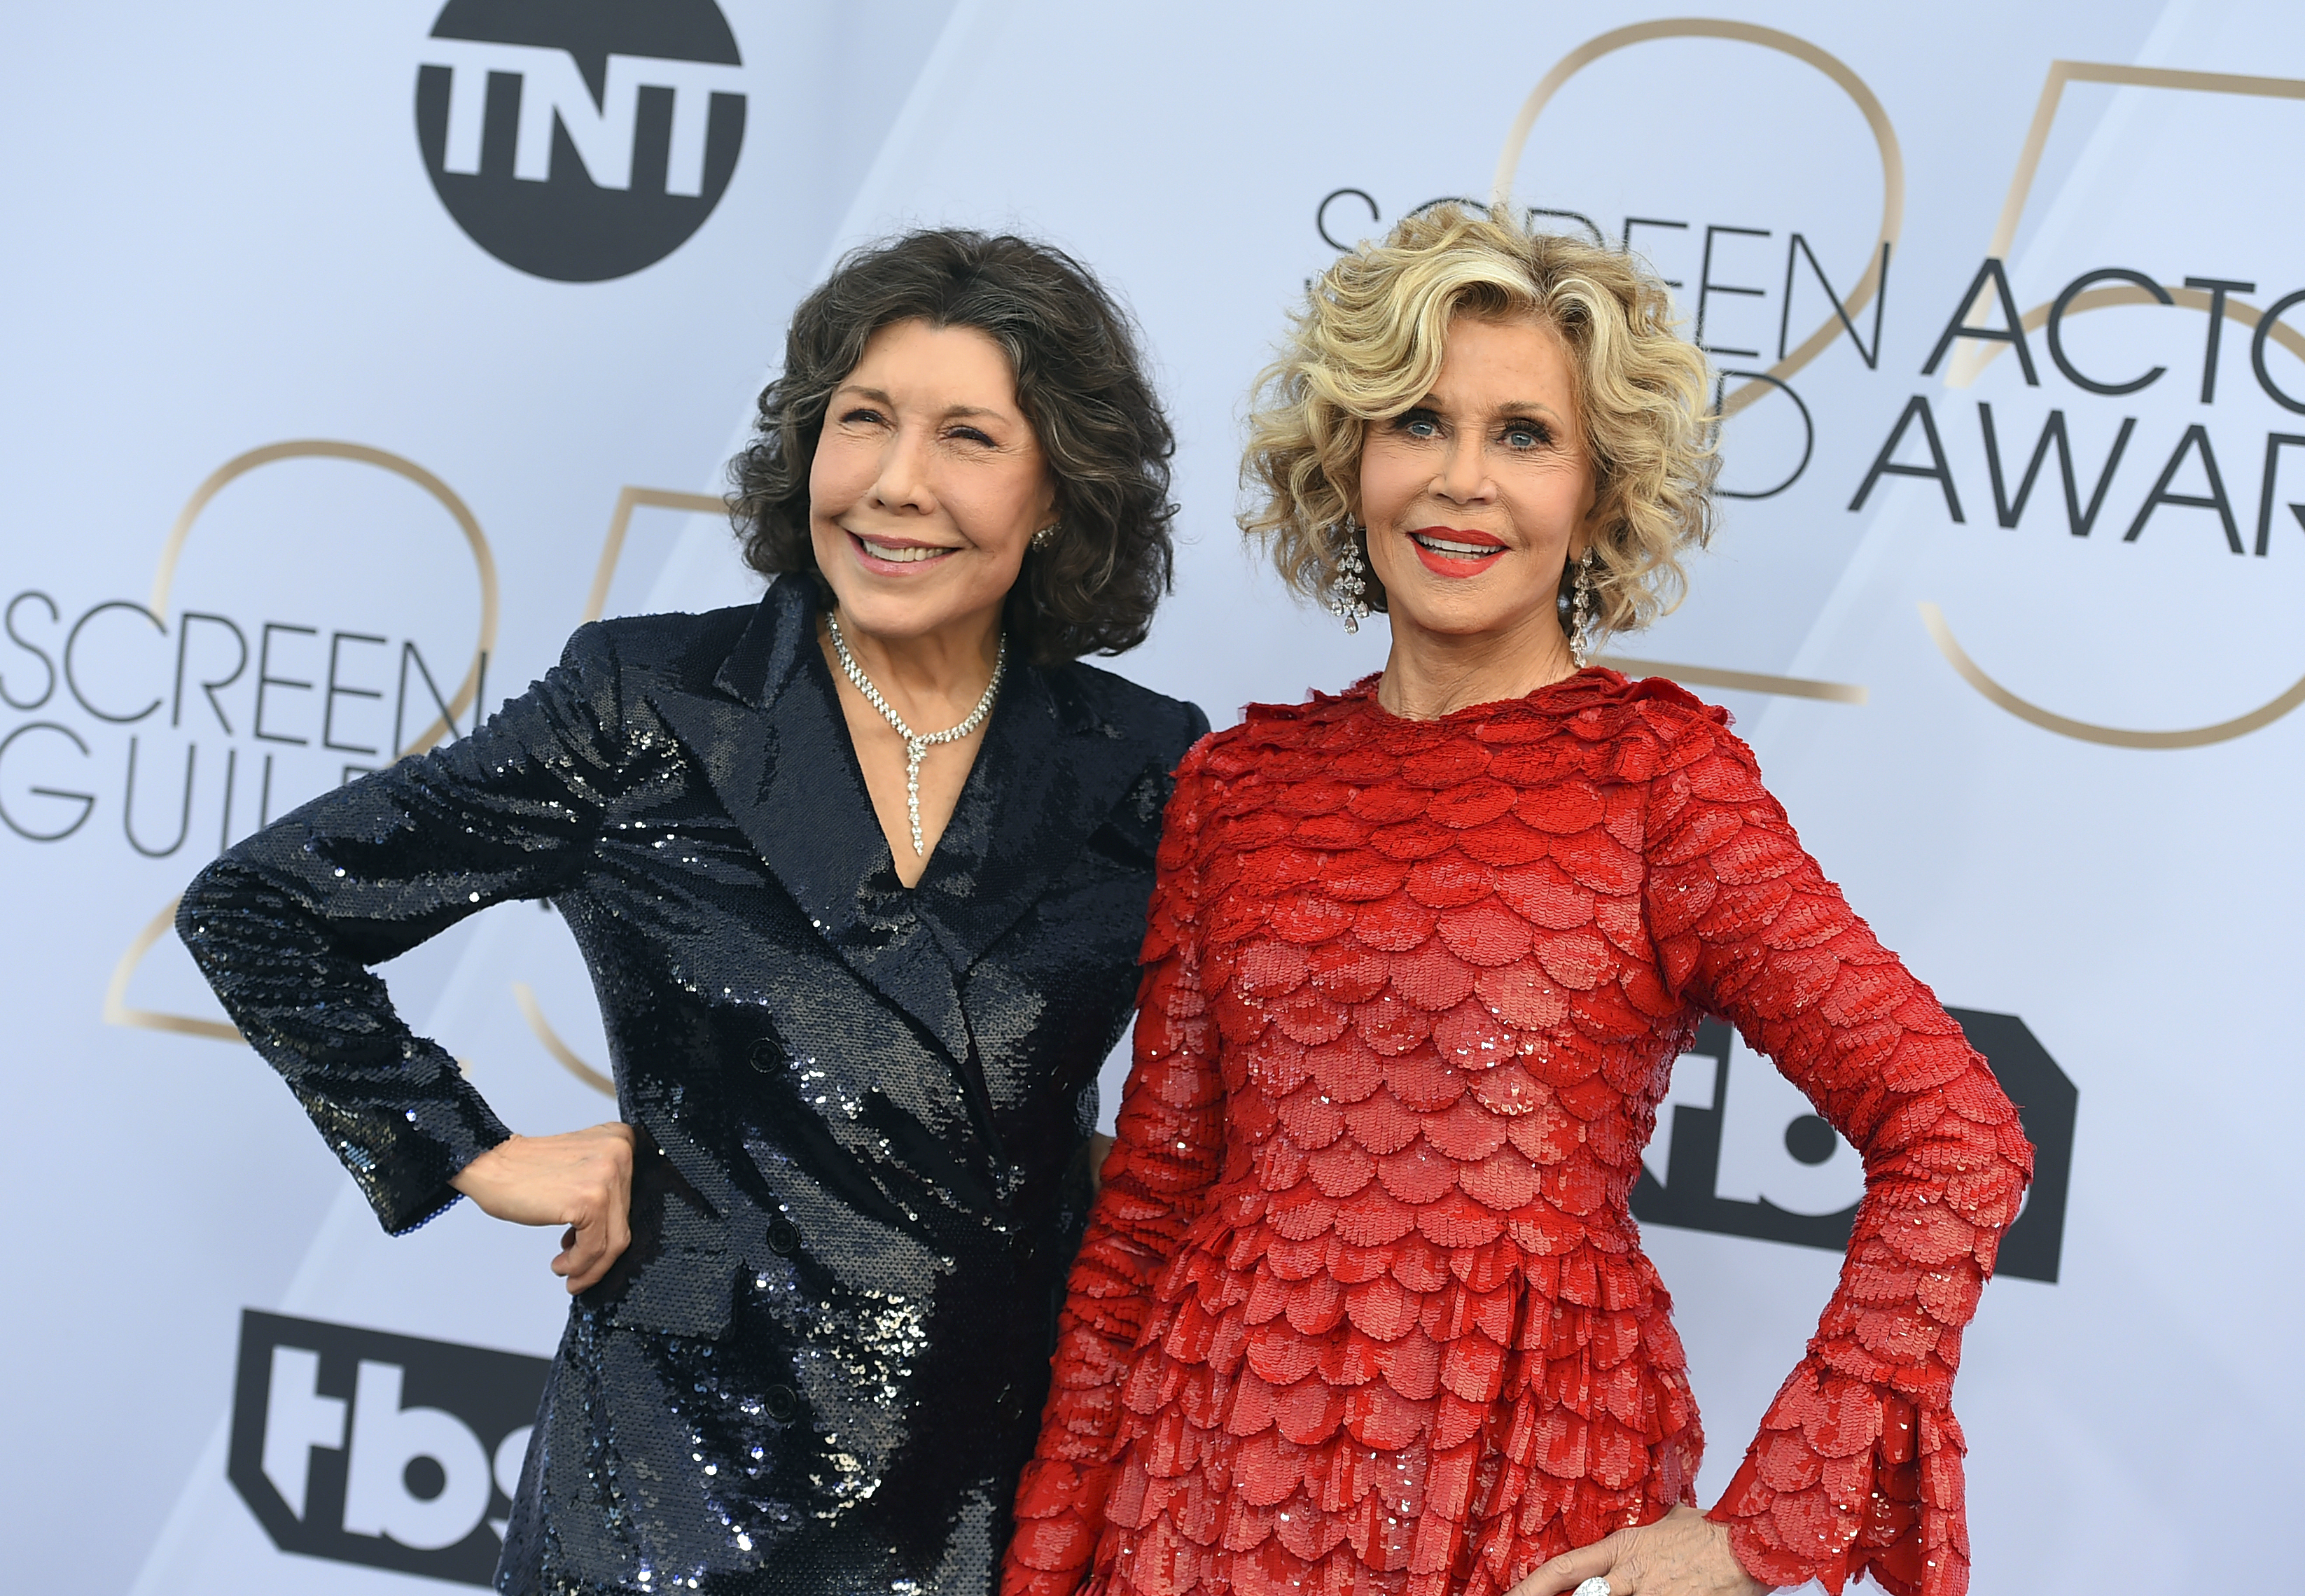 Lily Tomlin, left, and Jane Fonda arrive at the 25th annual Screen Actors Guild Awards at the Shrine Auditorium & Expo Hall on Sunday, Jan. 27, 2019, in Los Angeles. (Photo by Jordan Strauss/Invision/AP)